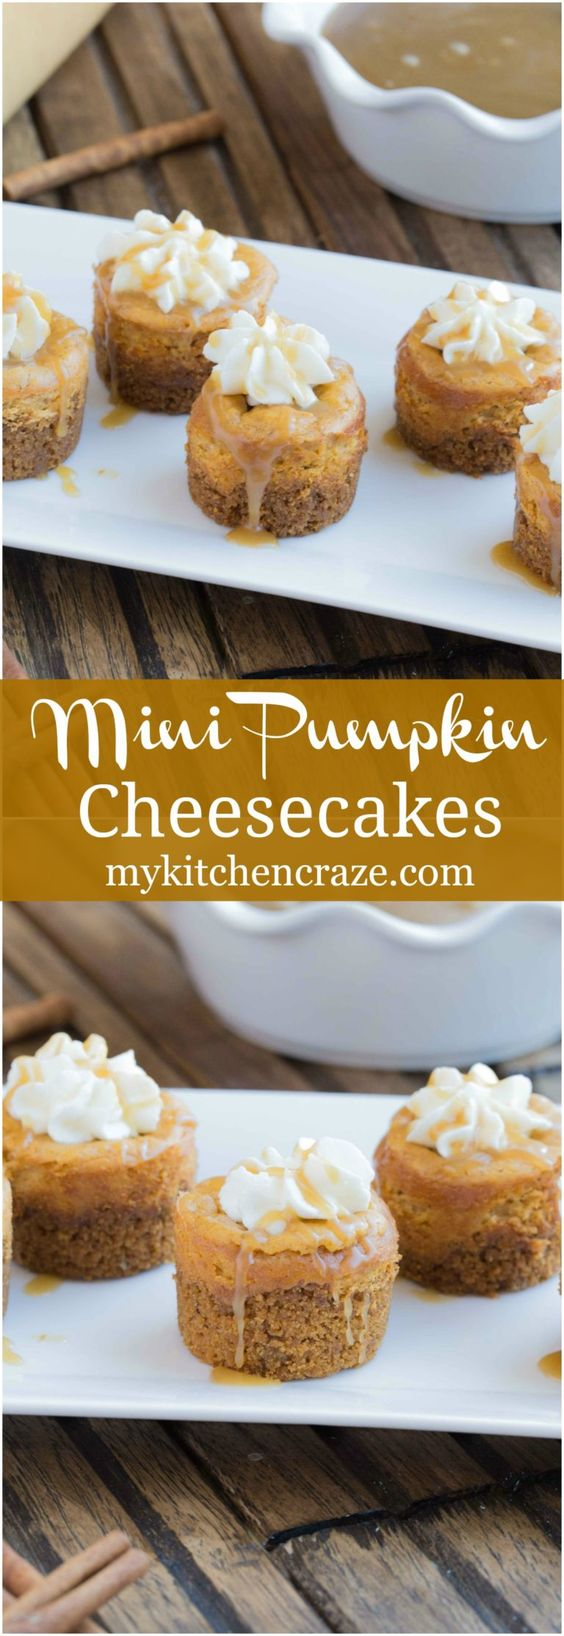 Thanksgiving Desserts: Mini Pumpkin Cheesecakes